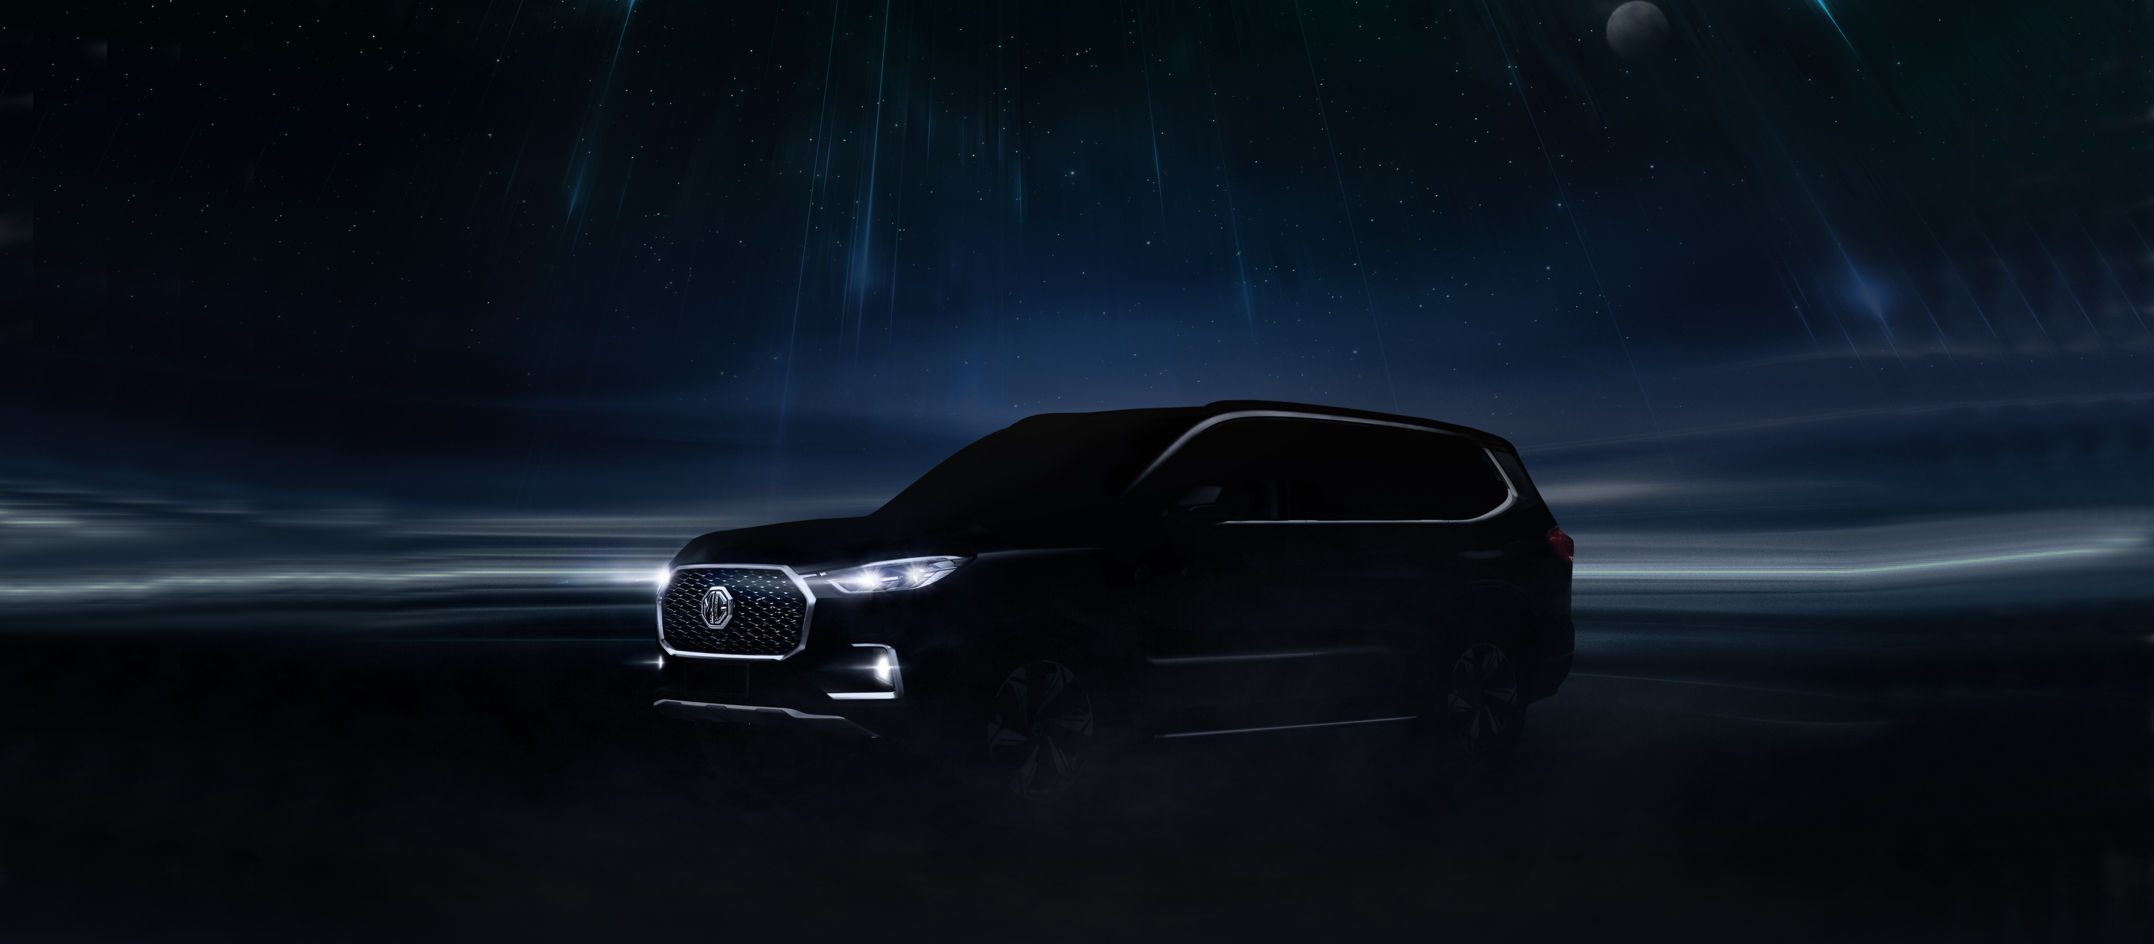 Luxurious MG Gloster is coming soon